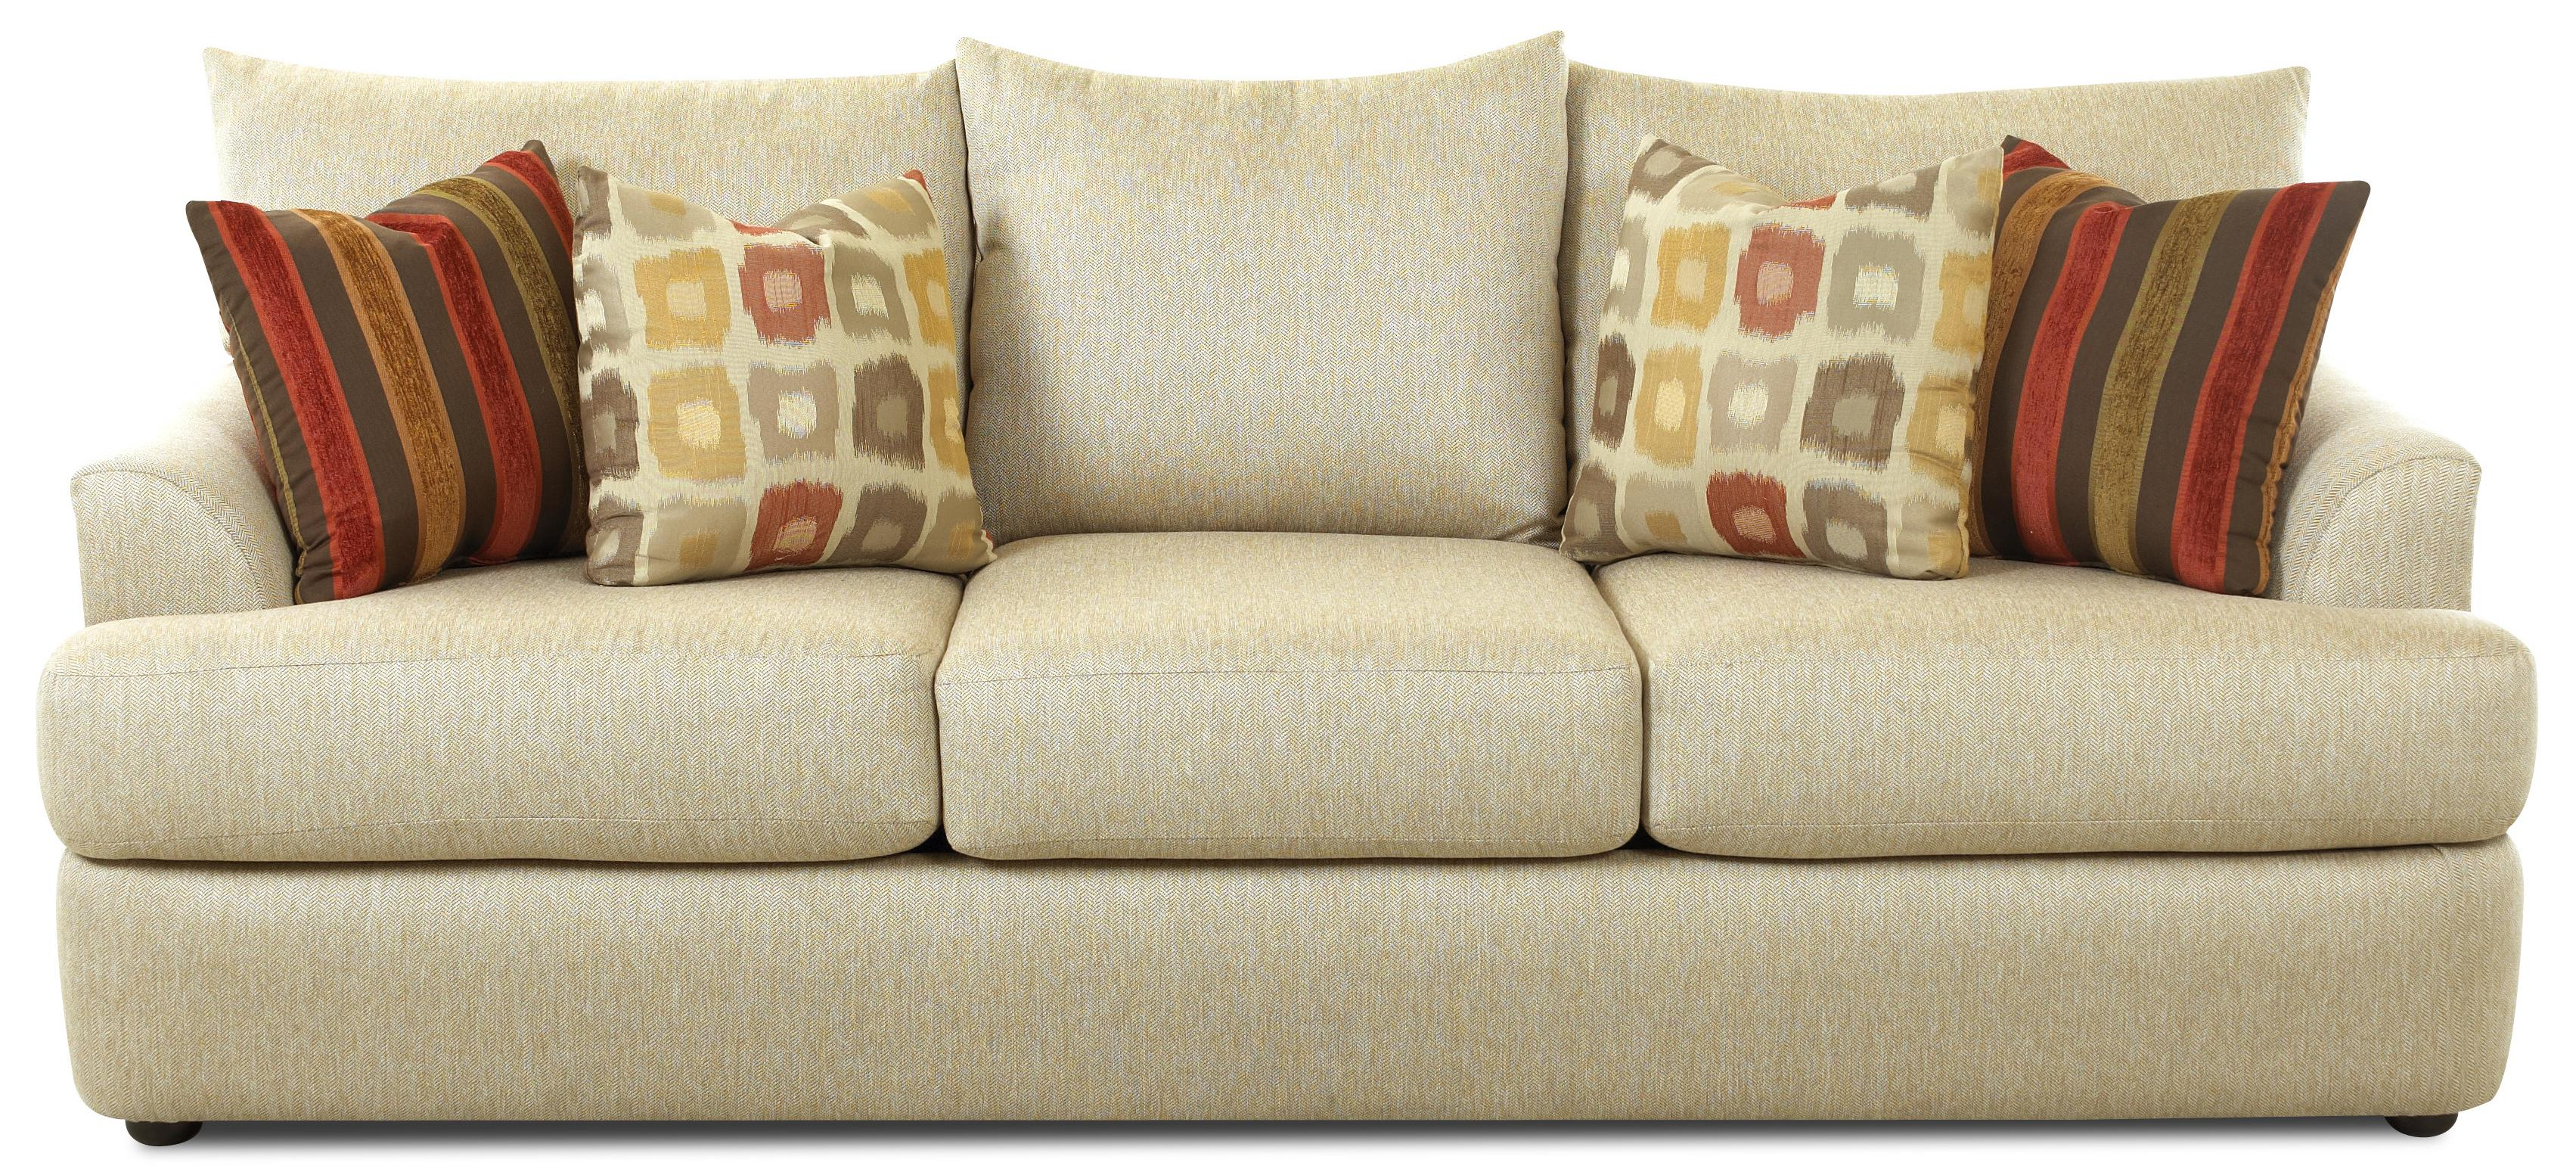 Three Over Three Sofa With Accent Pillows By Klaussner